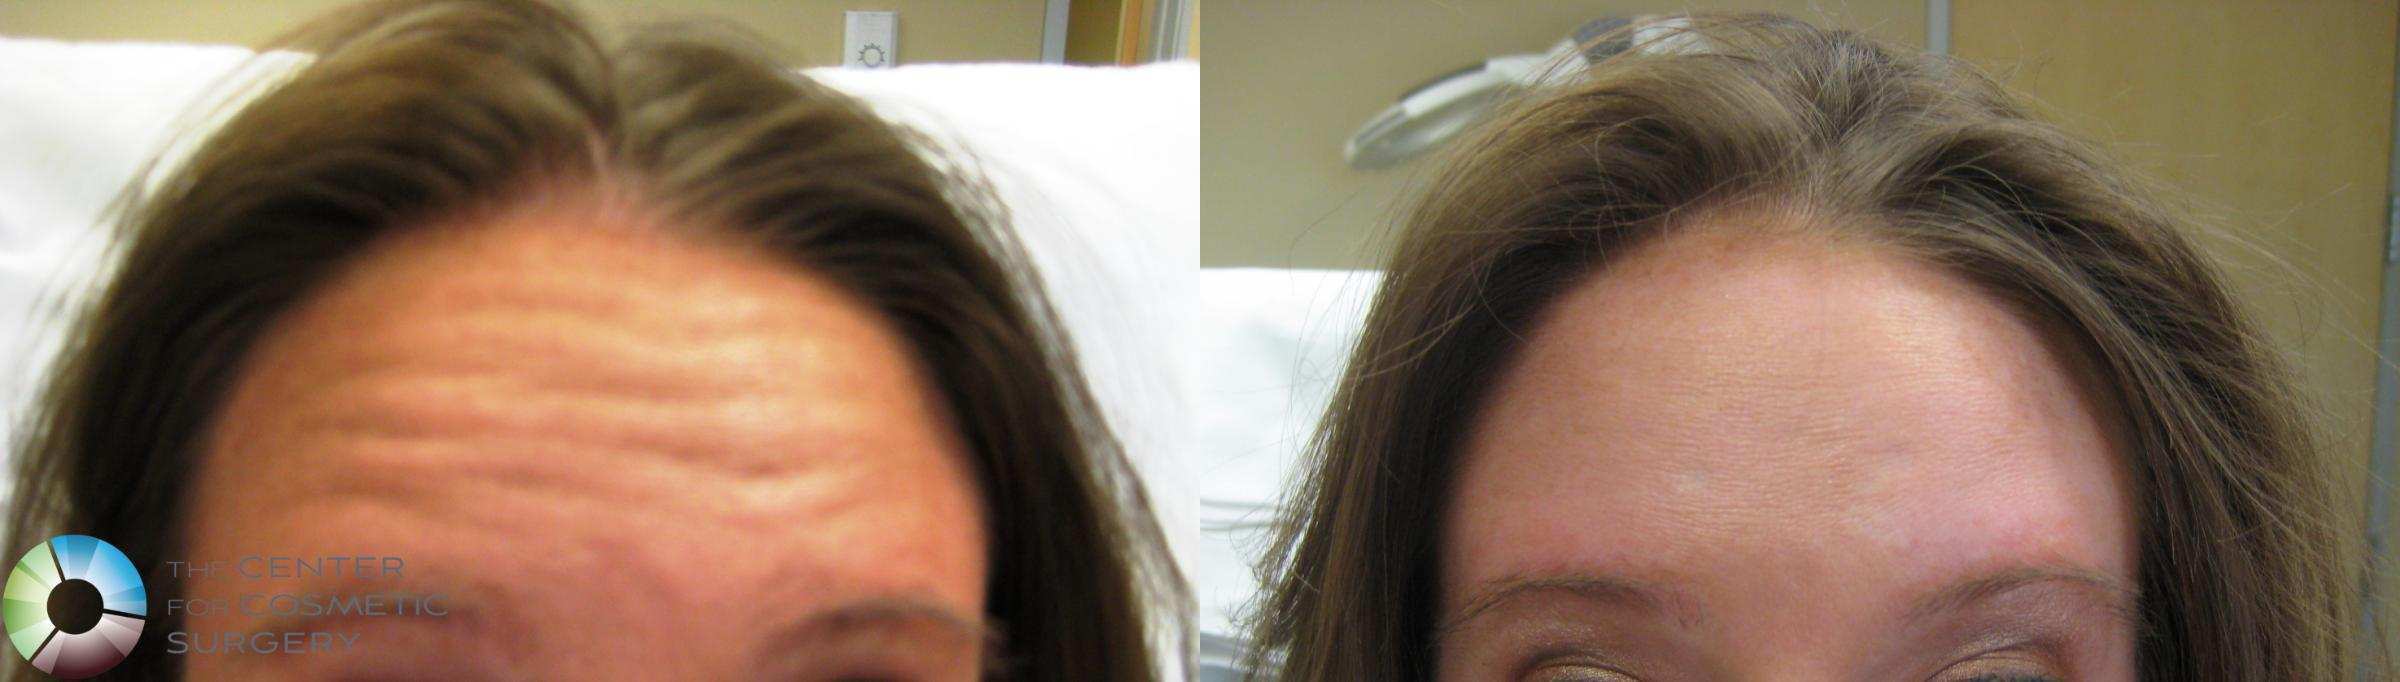 BOTOX® Cosmetic Case 281 Before & After View #1 | Denver & Golden, CO | The Center for Cosmetic Surgery